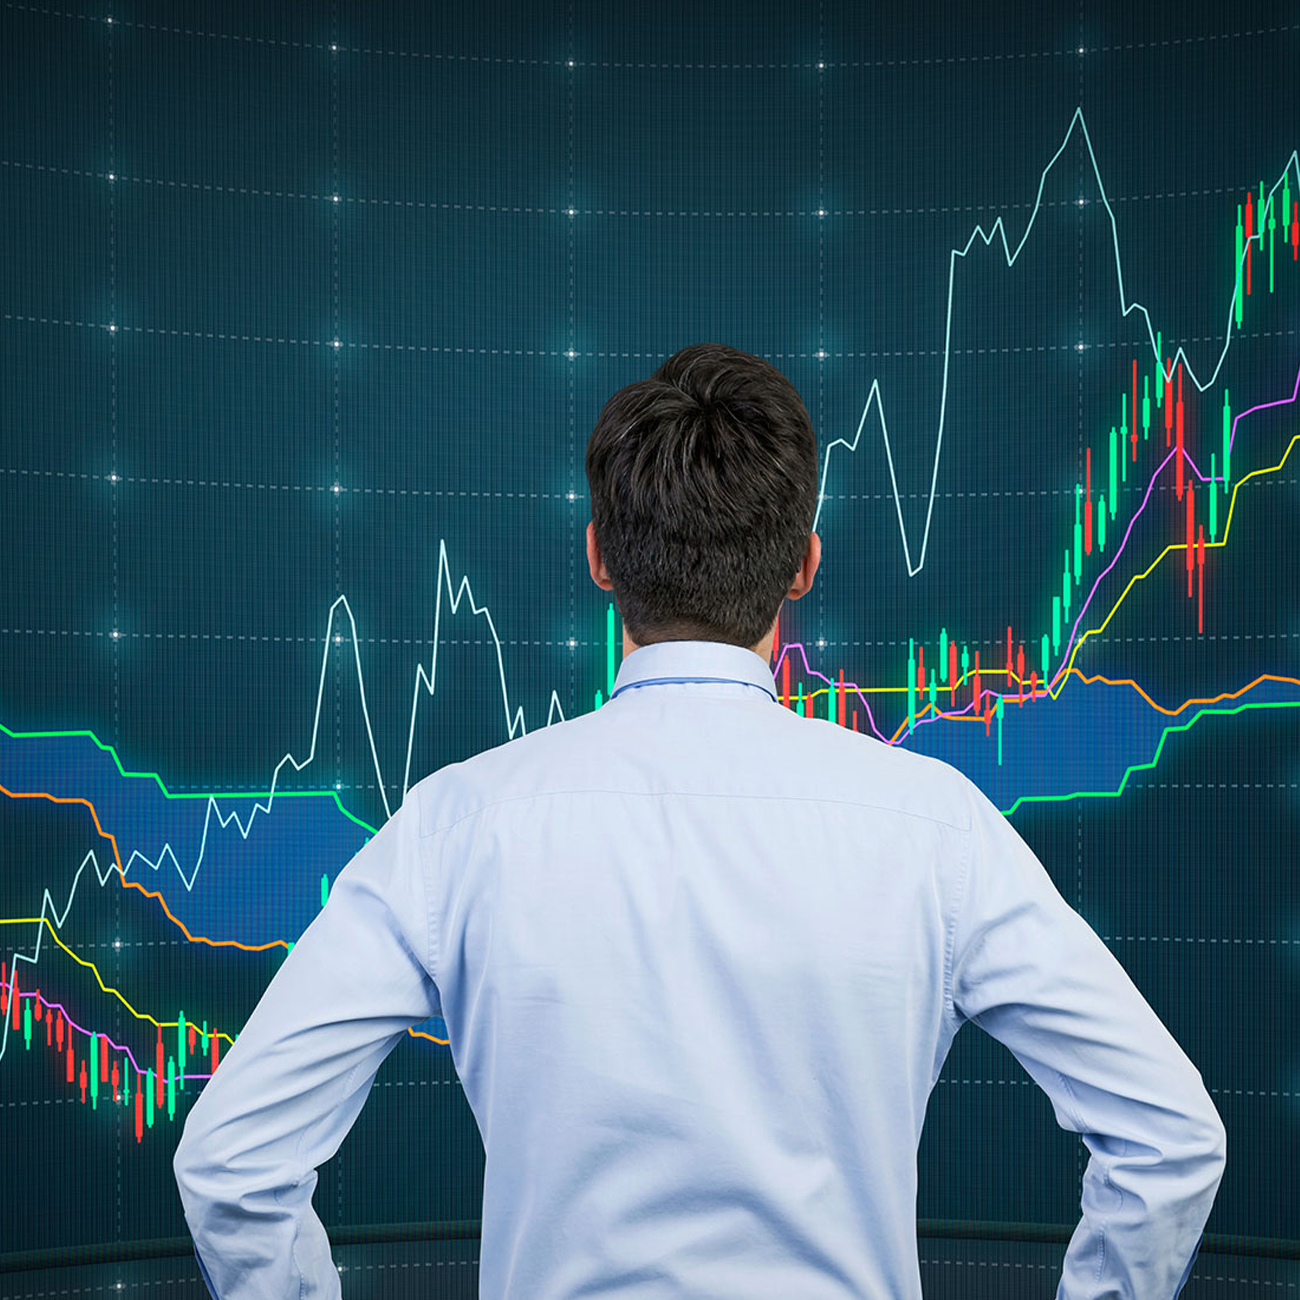 Markets Update: Crypto Prices Consolidate After Failing to Surpass Resistance